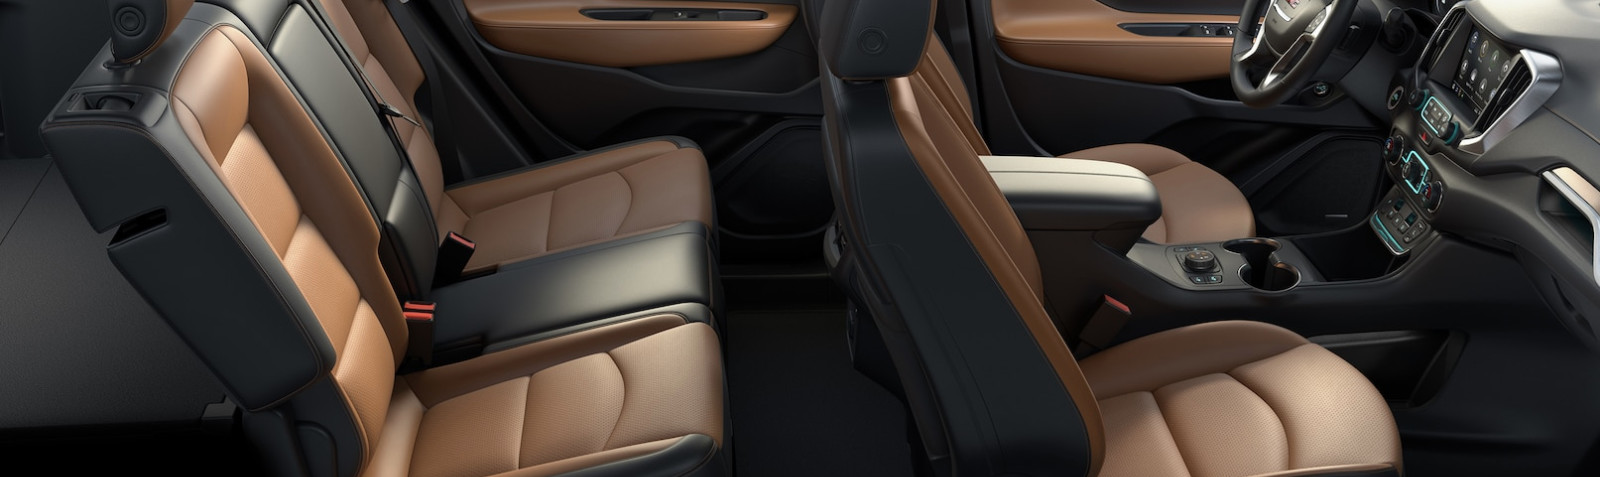 Spacious Cabin of the 2018 GMC Terrain